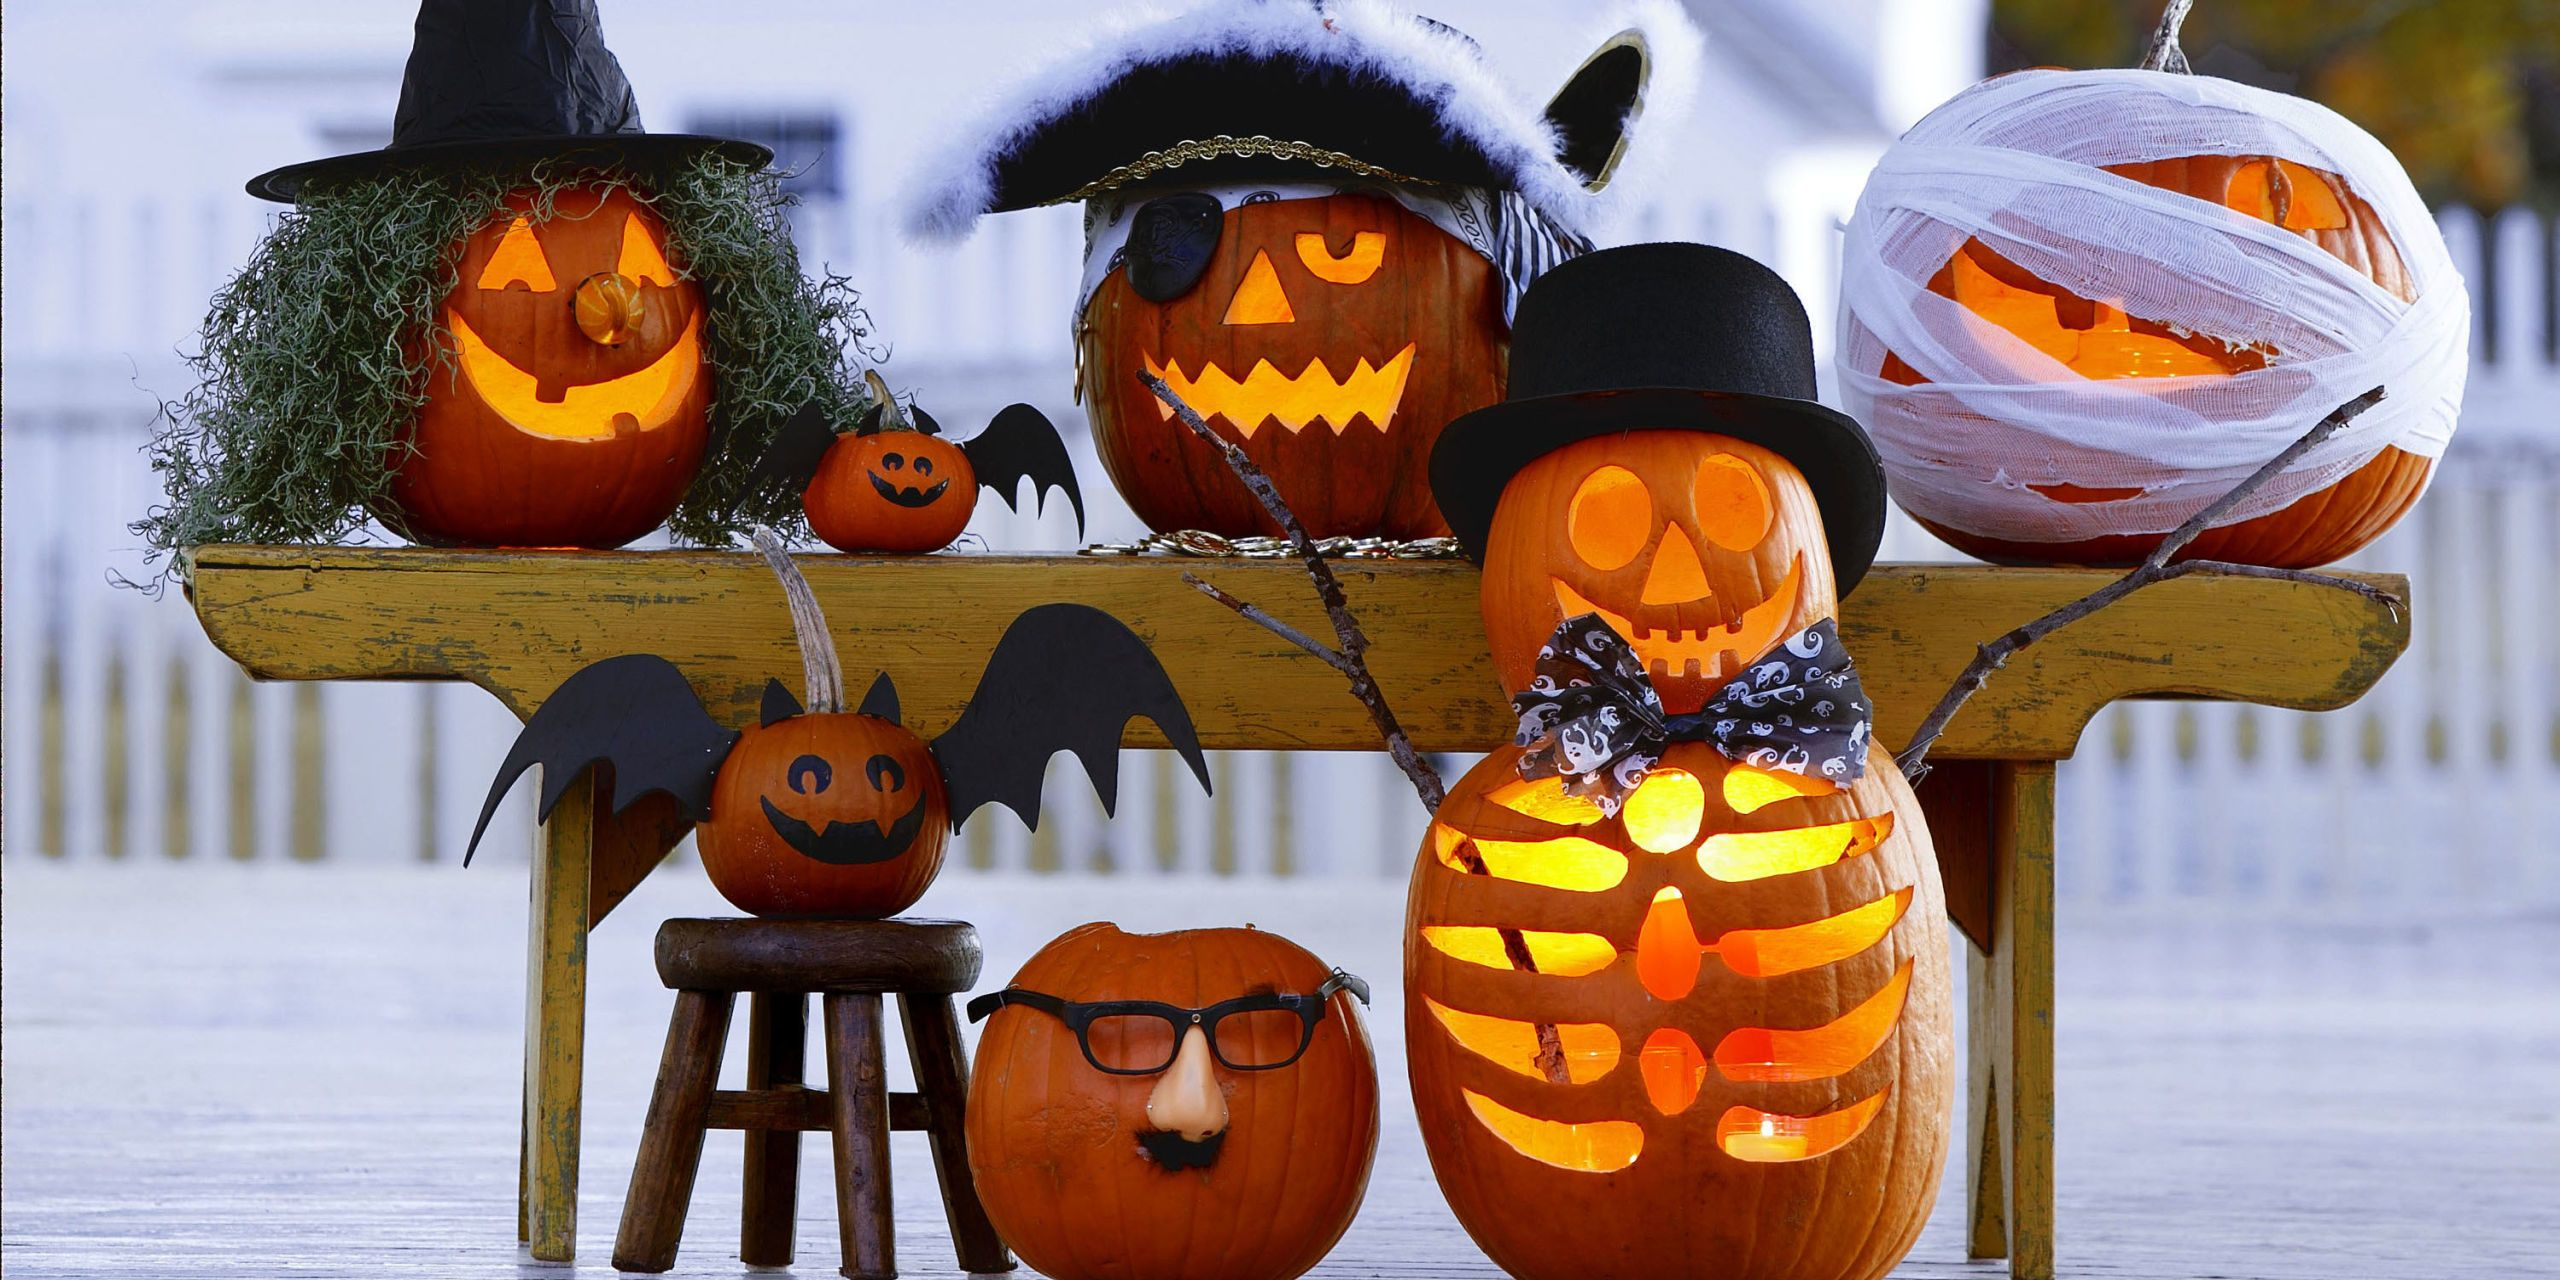 Easy Halloween Pumpkin Ideas Elegant Easy Ideas For Pumpkin Carving